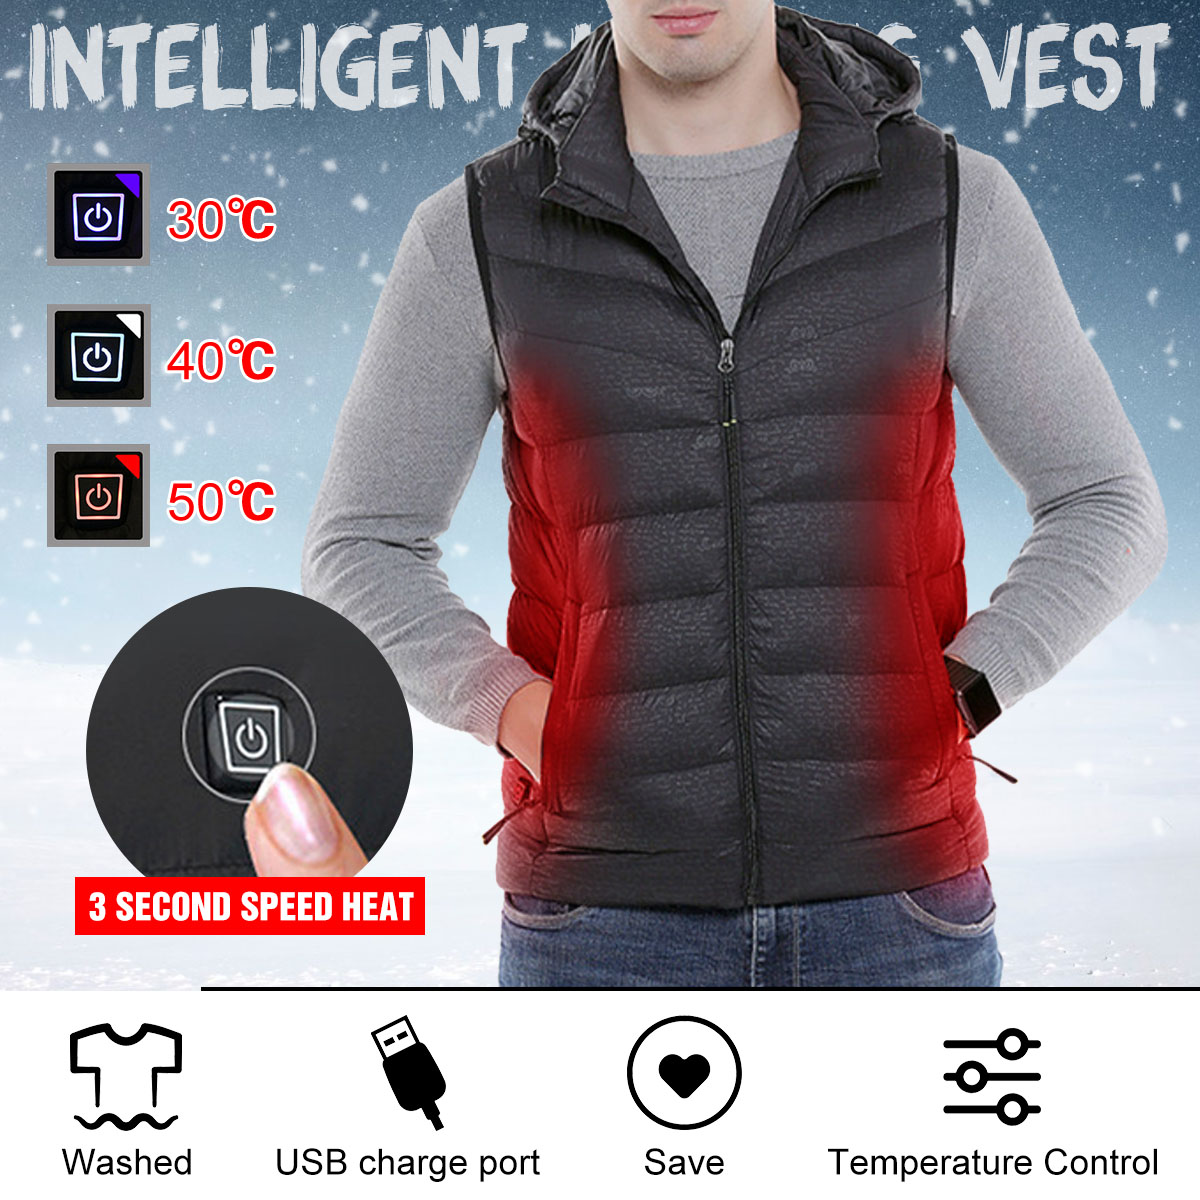 Mens Winter Heated USB Charge 3modes Hooded Work Jacket Coats Vest Adjustable Temperature Control Safety ClothingMens Winter Heated USB Charge 3modes Hooded Work Jacket Coats Vest Adjustable Temperature Control Safety Clothing